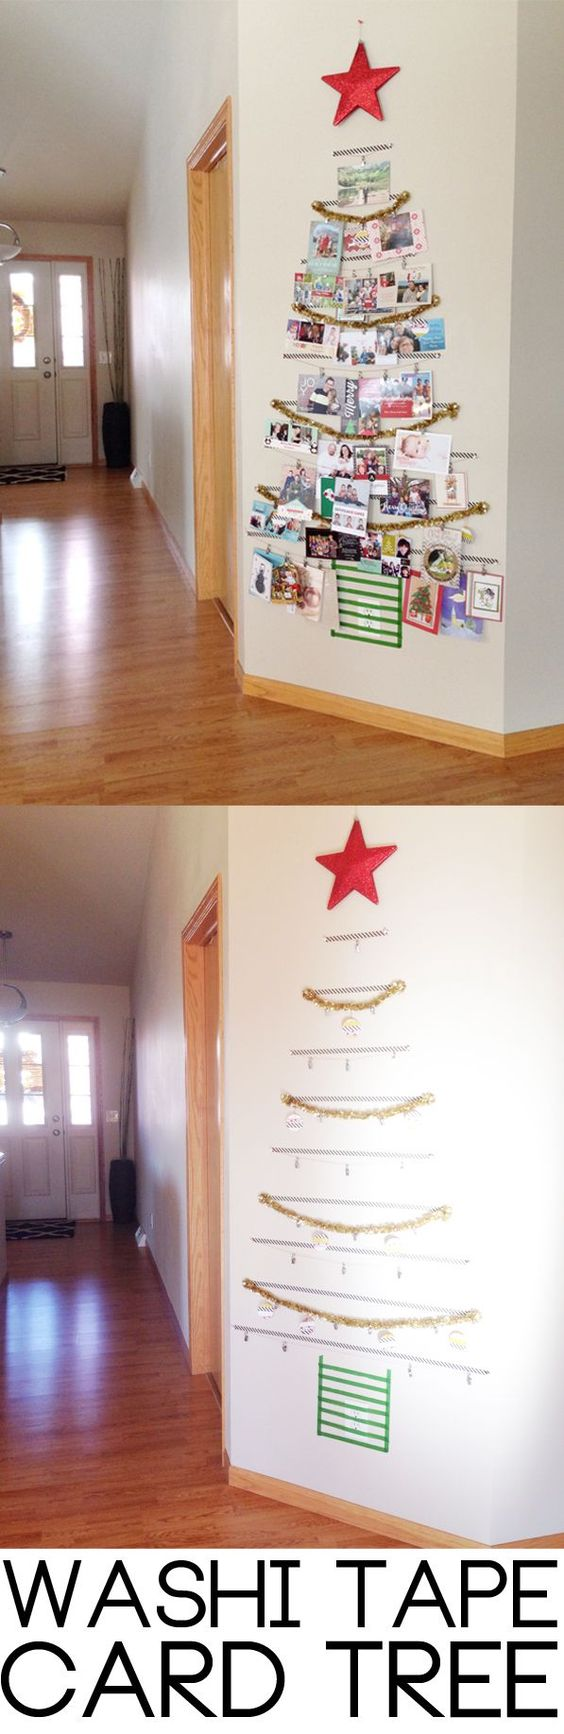 washi-tape-card-tree via